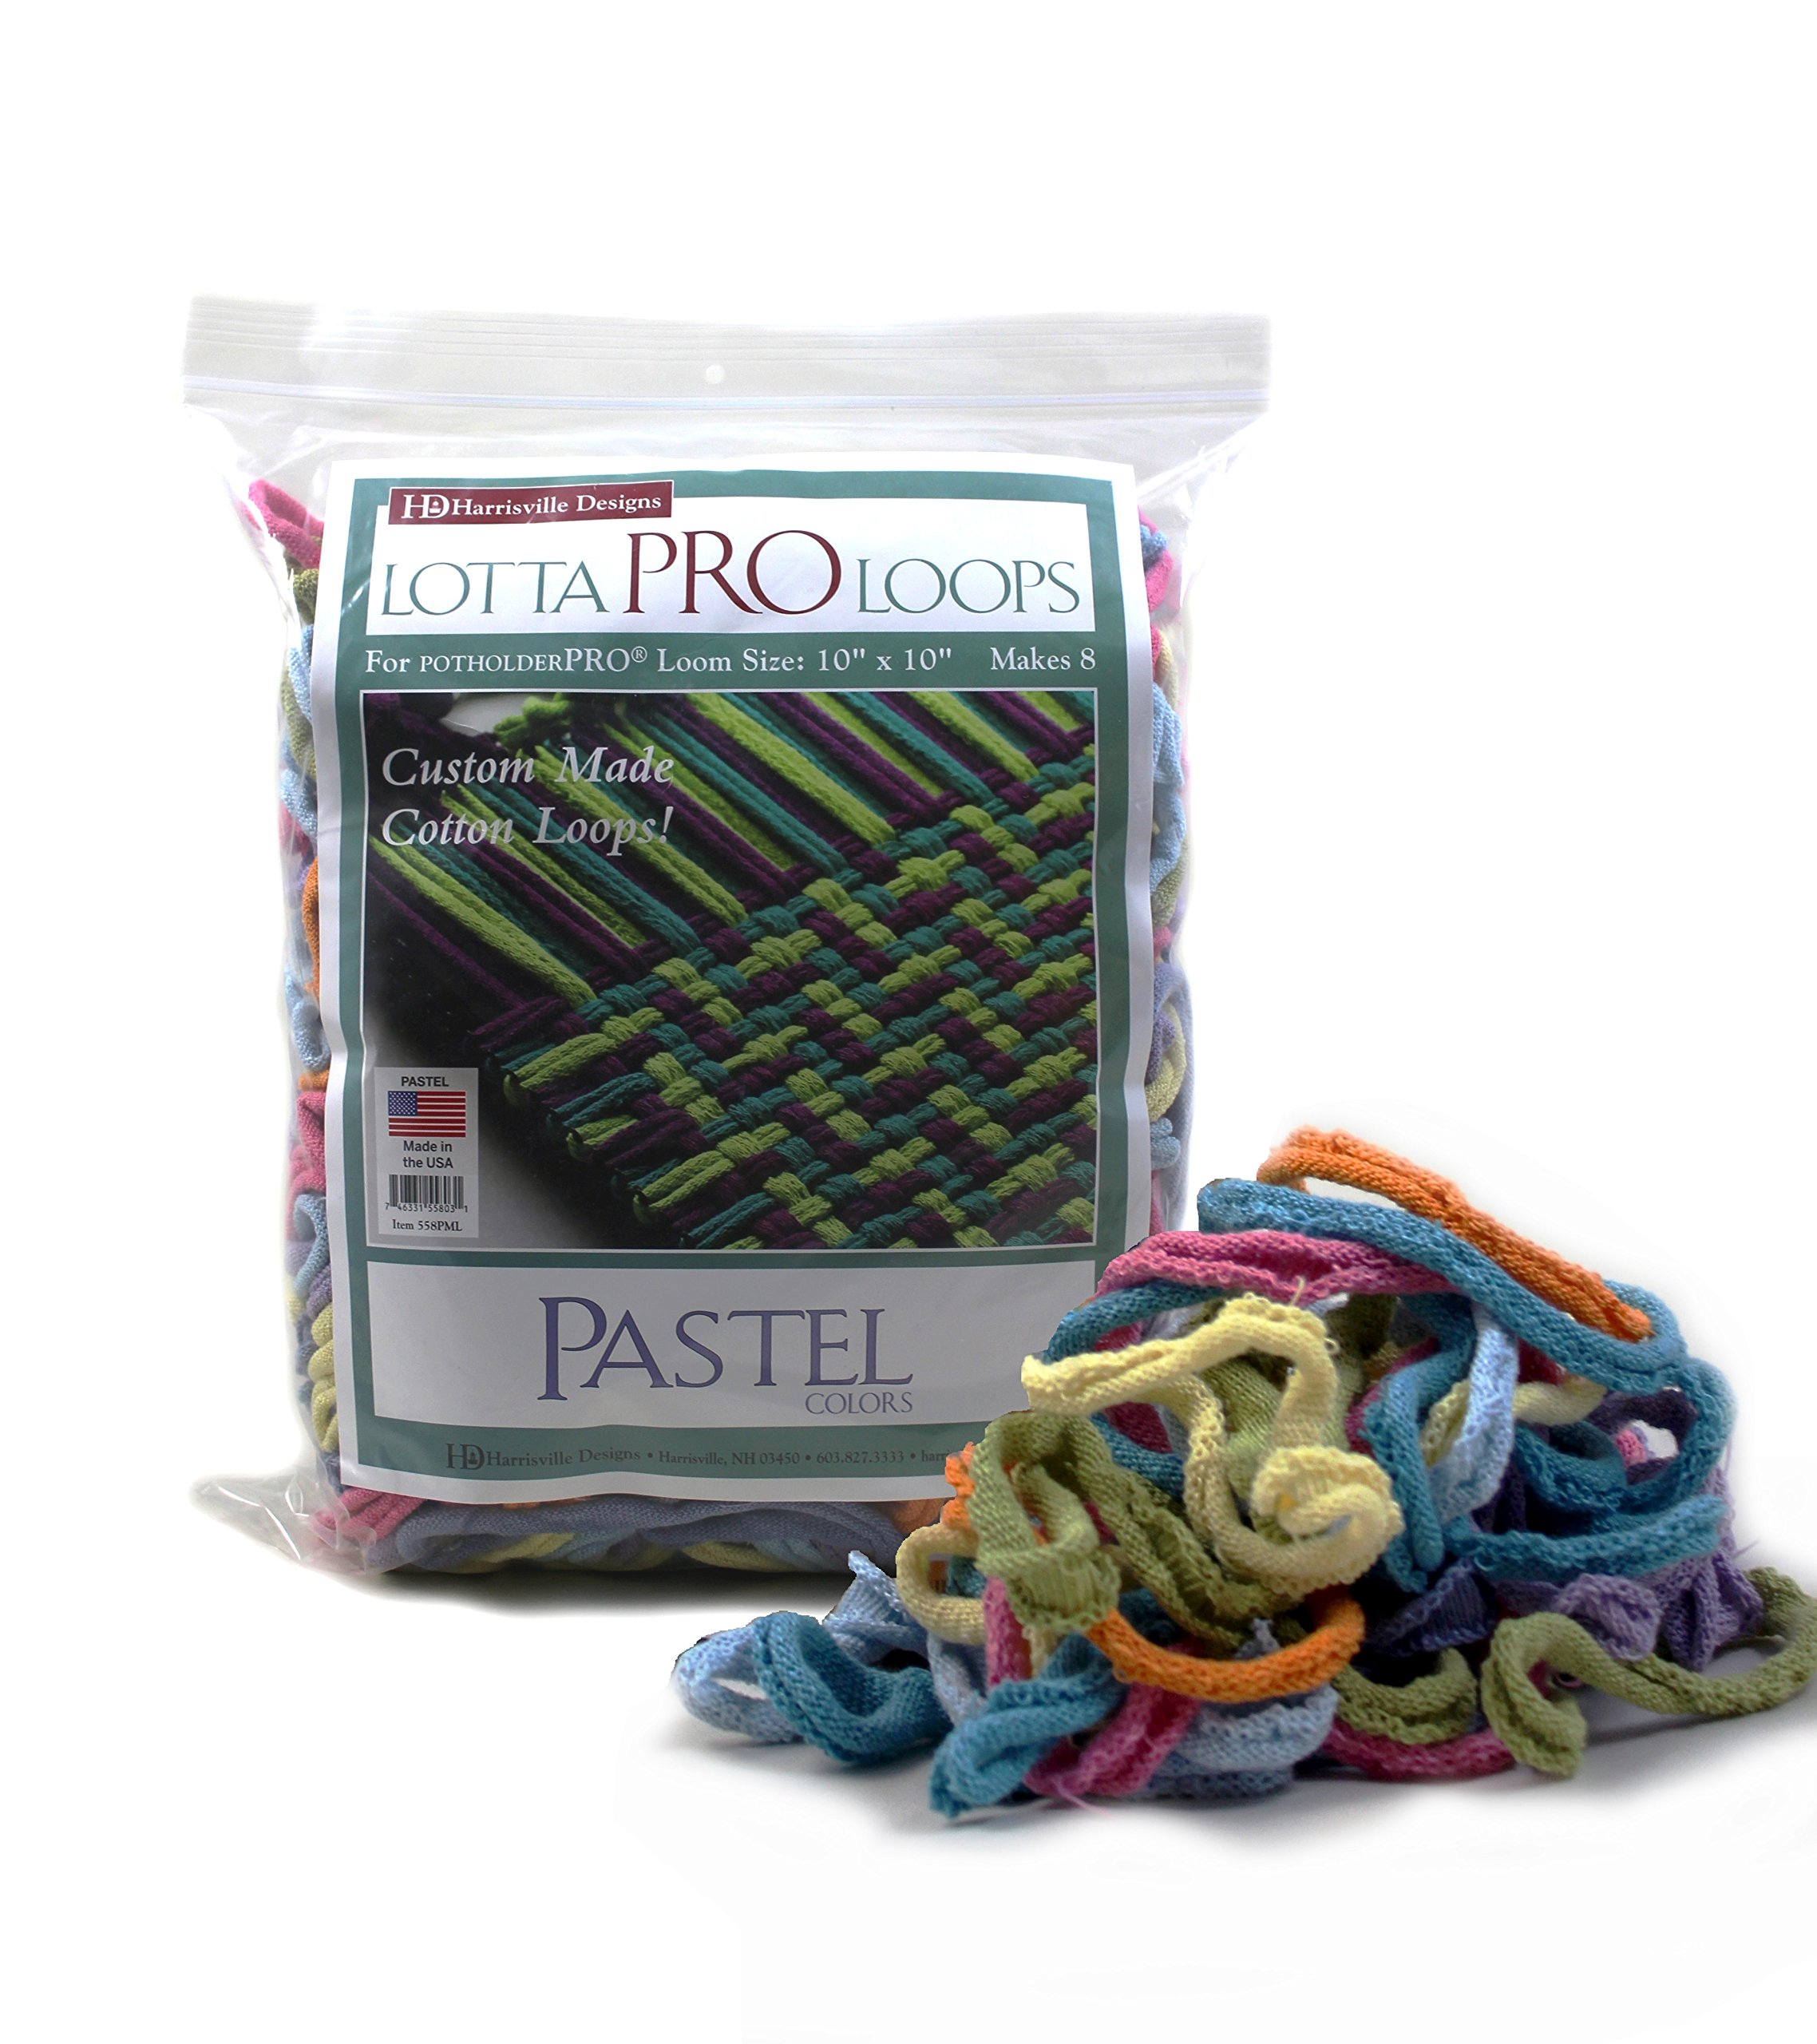 "Harrisville 10"" Pro Pastel Lotta Loops in Assorted Colors – Makes 8 Potholders"